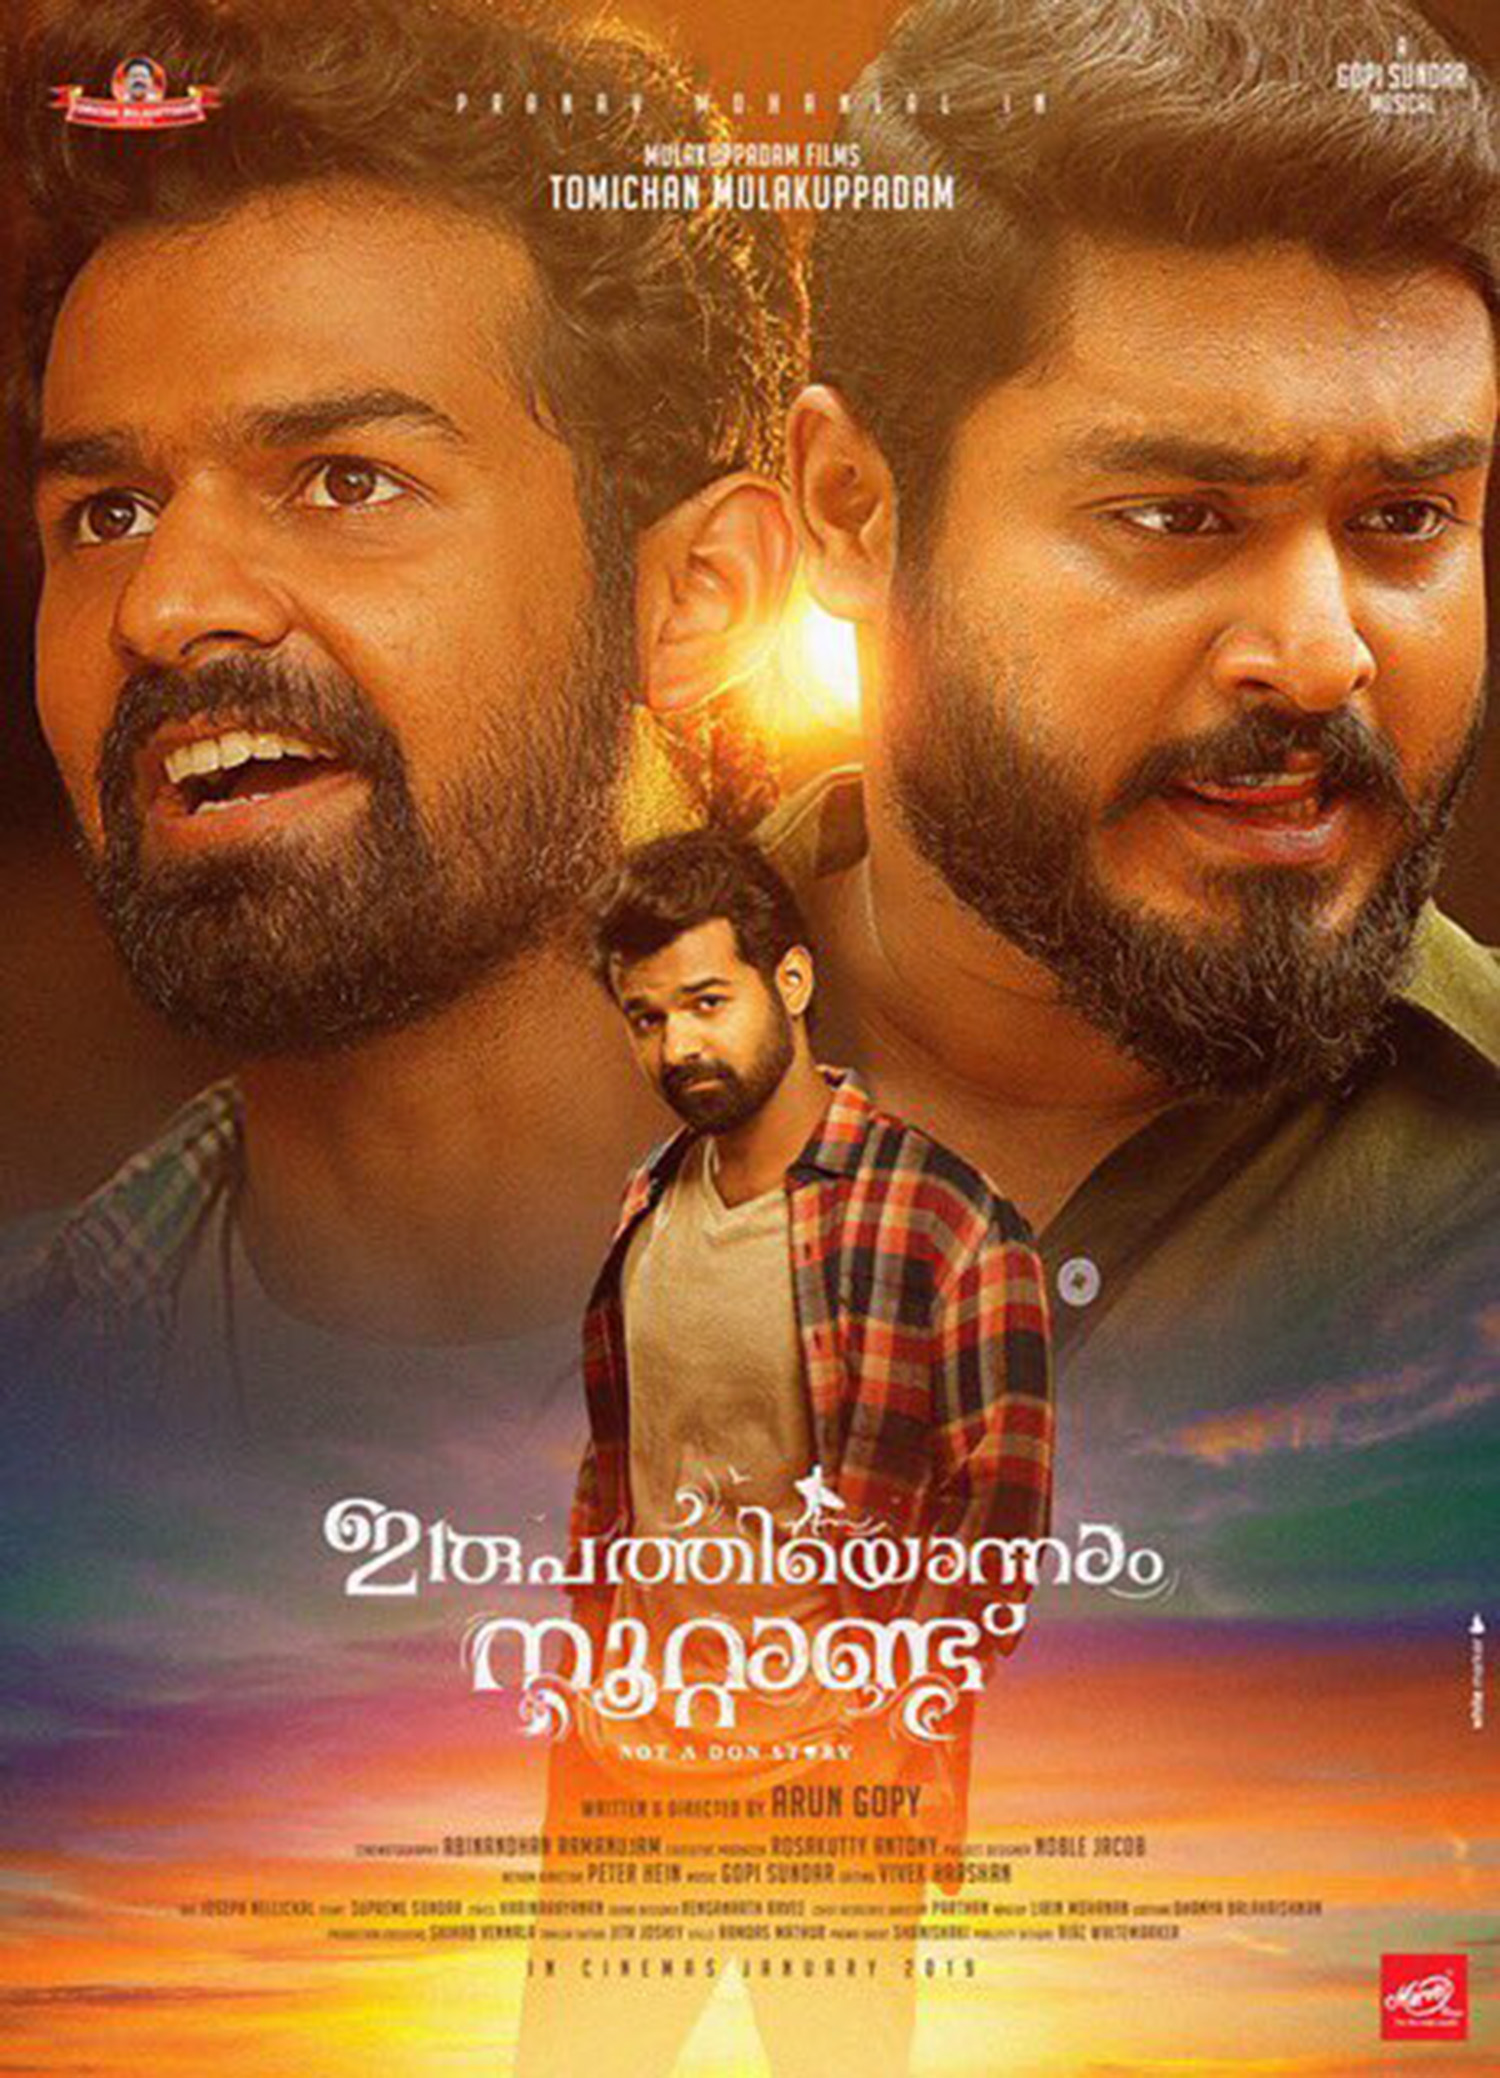 Irupathiyonnam Noottandu,Irupathiyonnam Noottandu poster,Irupathiyonnam Noottandu new poster,Irupathiyonnam Noottandu movie,Irupathiyonnam Noottandu malayalam movie,pranav mohanlal,gokul suresh,pranav mohanlal and gokul suresh in Irupathiyonnam Noottandu,arun gopy,Irupathiyonnam Noottandu latest news,Irupathiyonnam Noottandu latest update